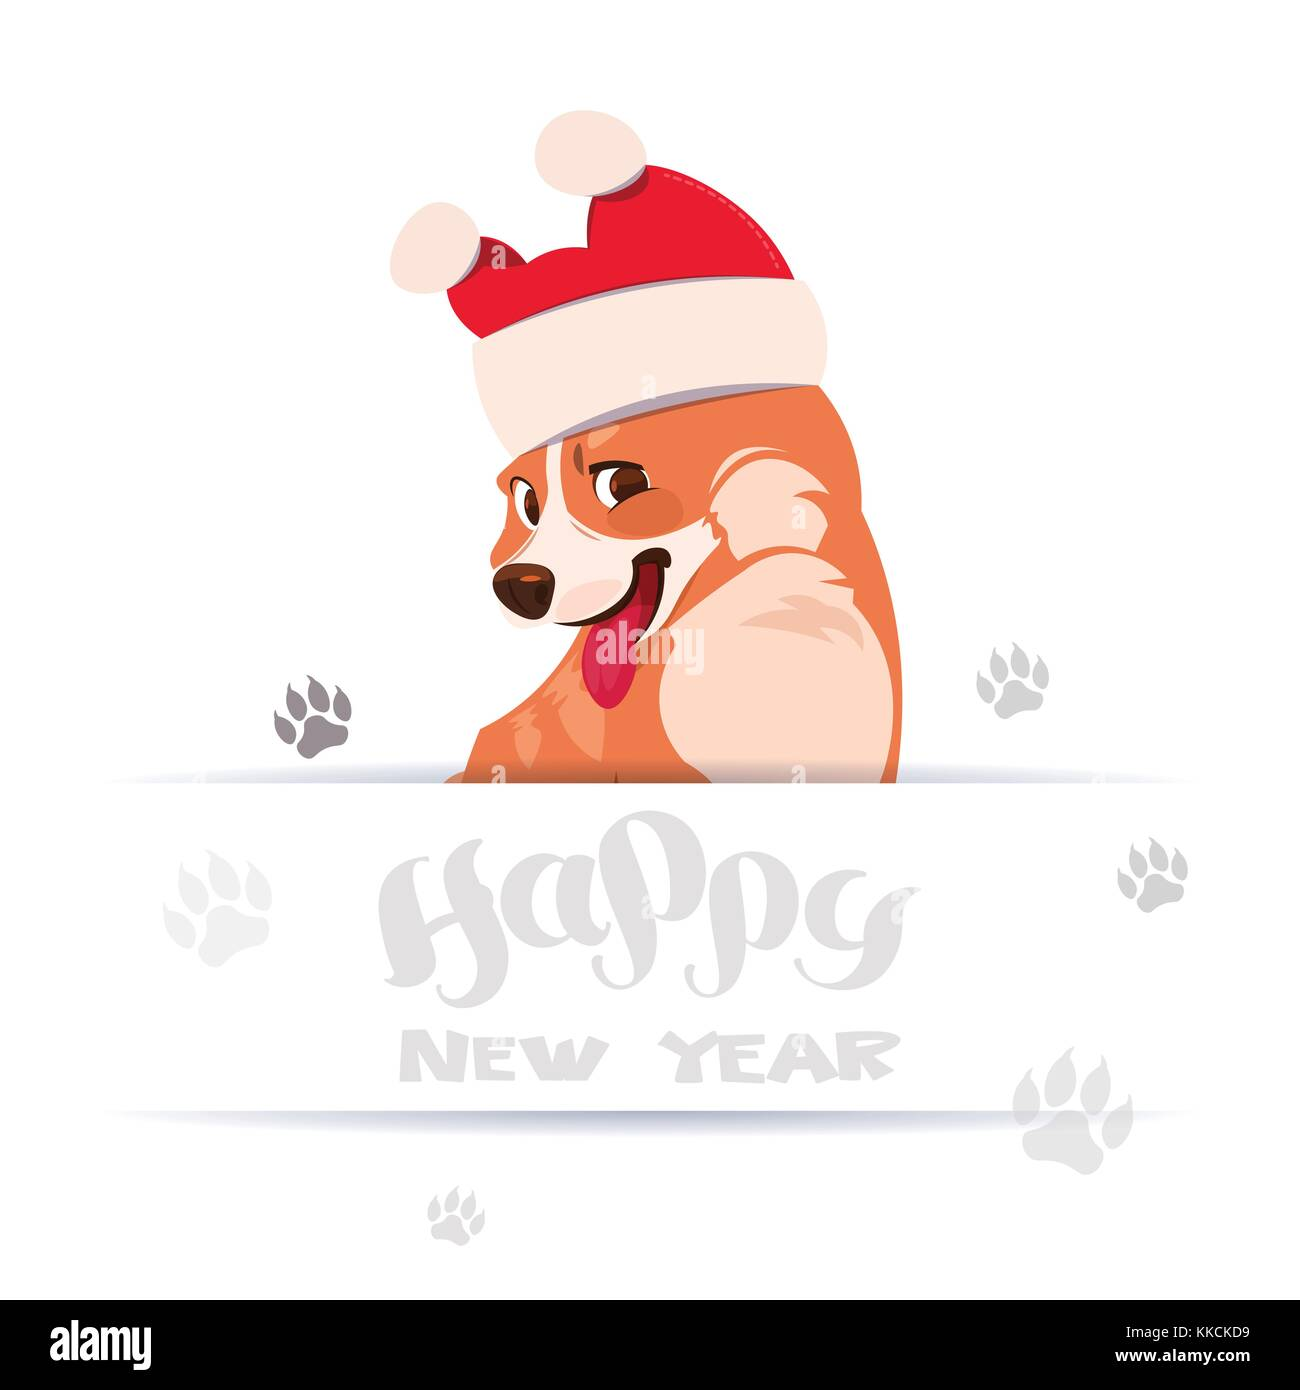 happy new year 2018 greeting card design with lettering and corgi dog wearing santa hat over foot prints on white background